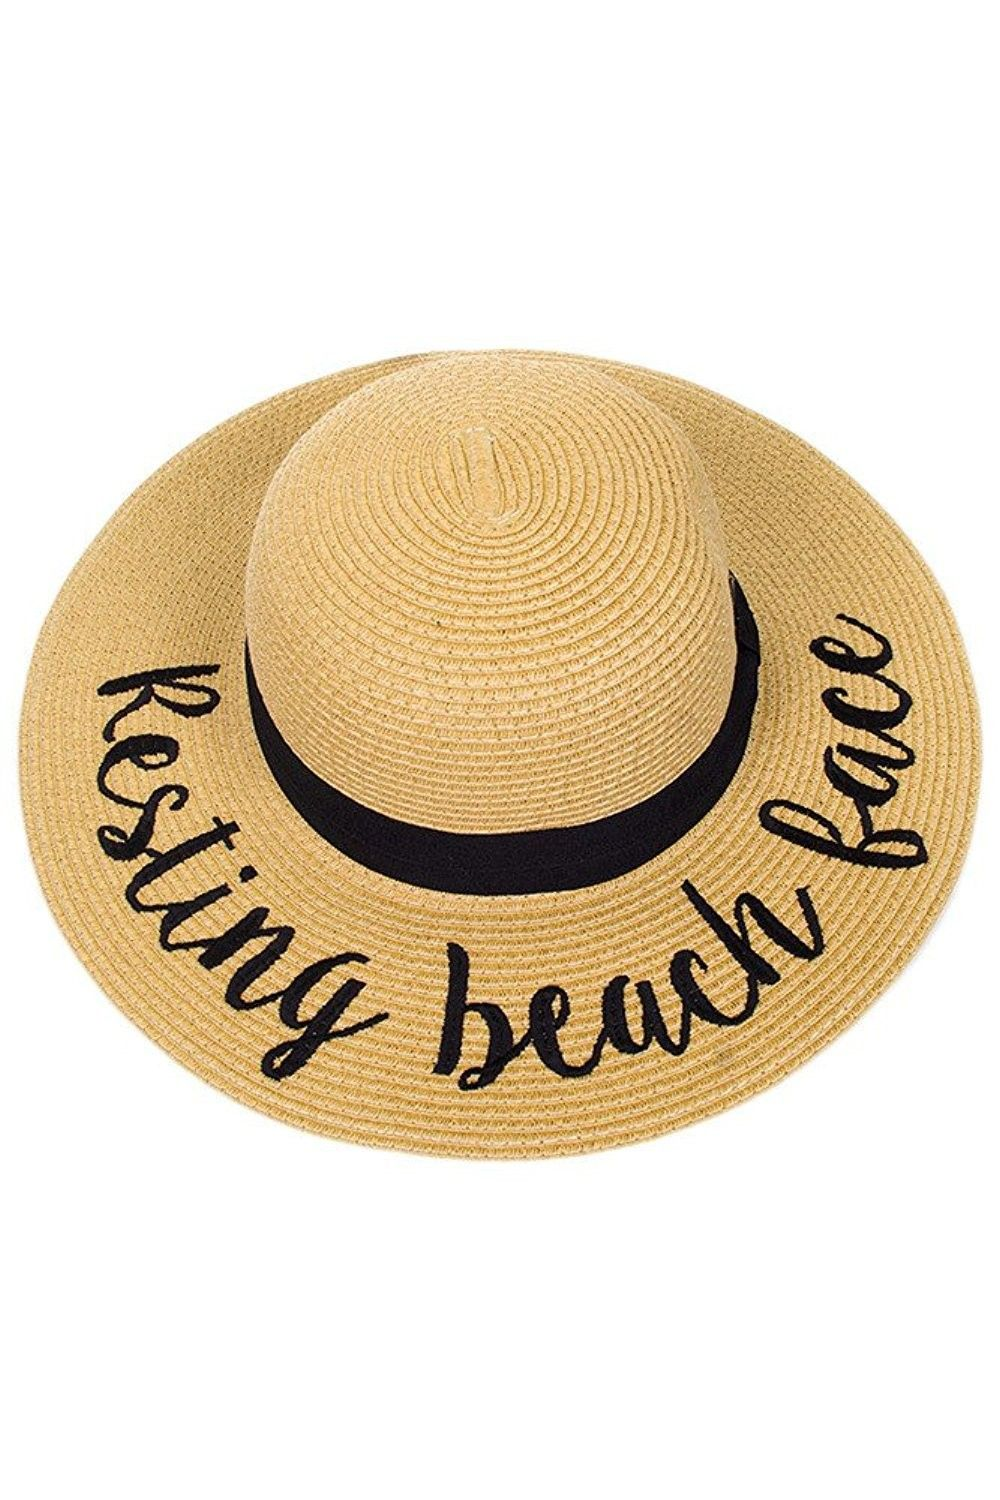 Natural Embroidered Lettering Adjustable - Resting Beach Face - CV183OAK4WR  - Hats   Caps cf17438c373